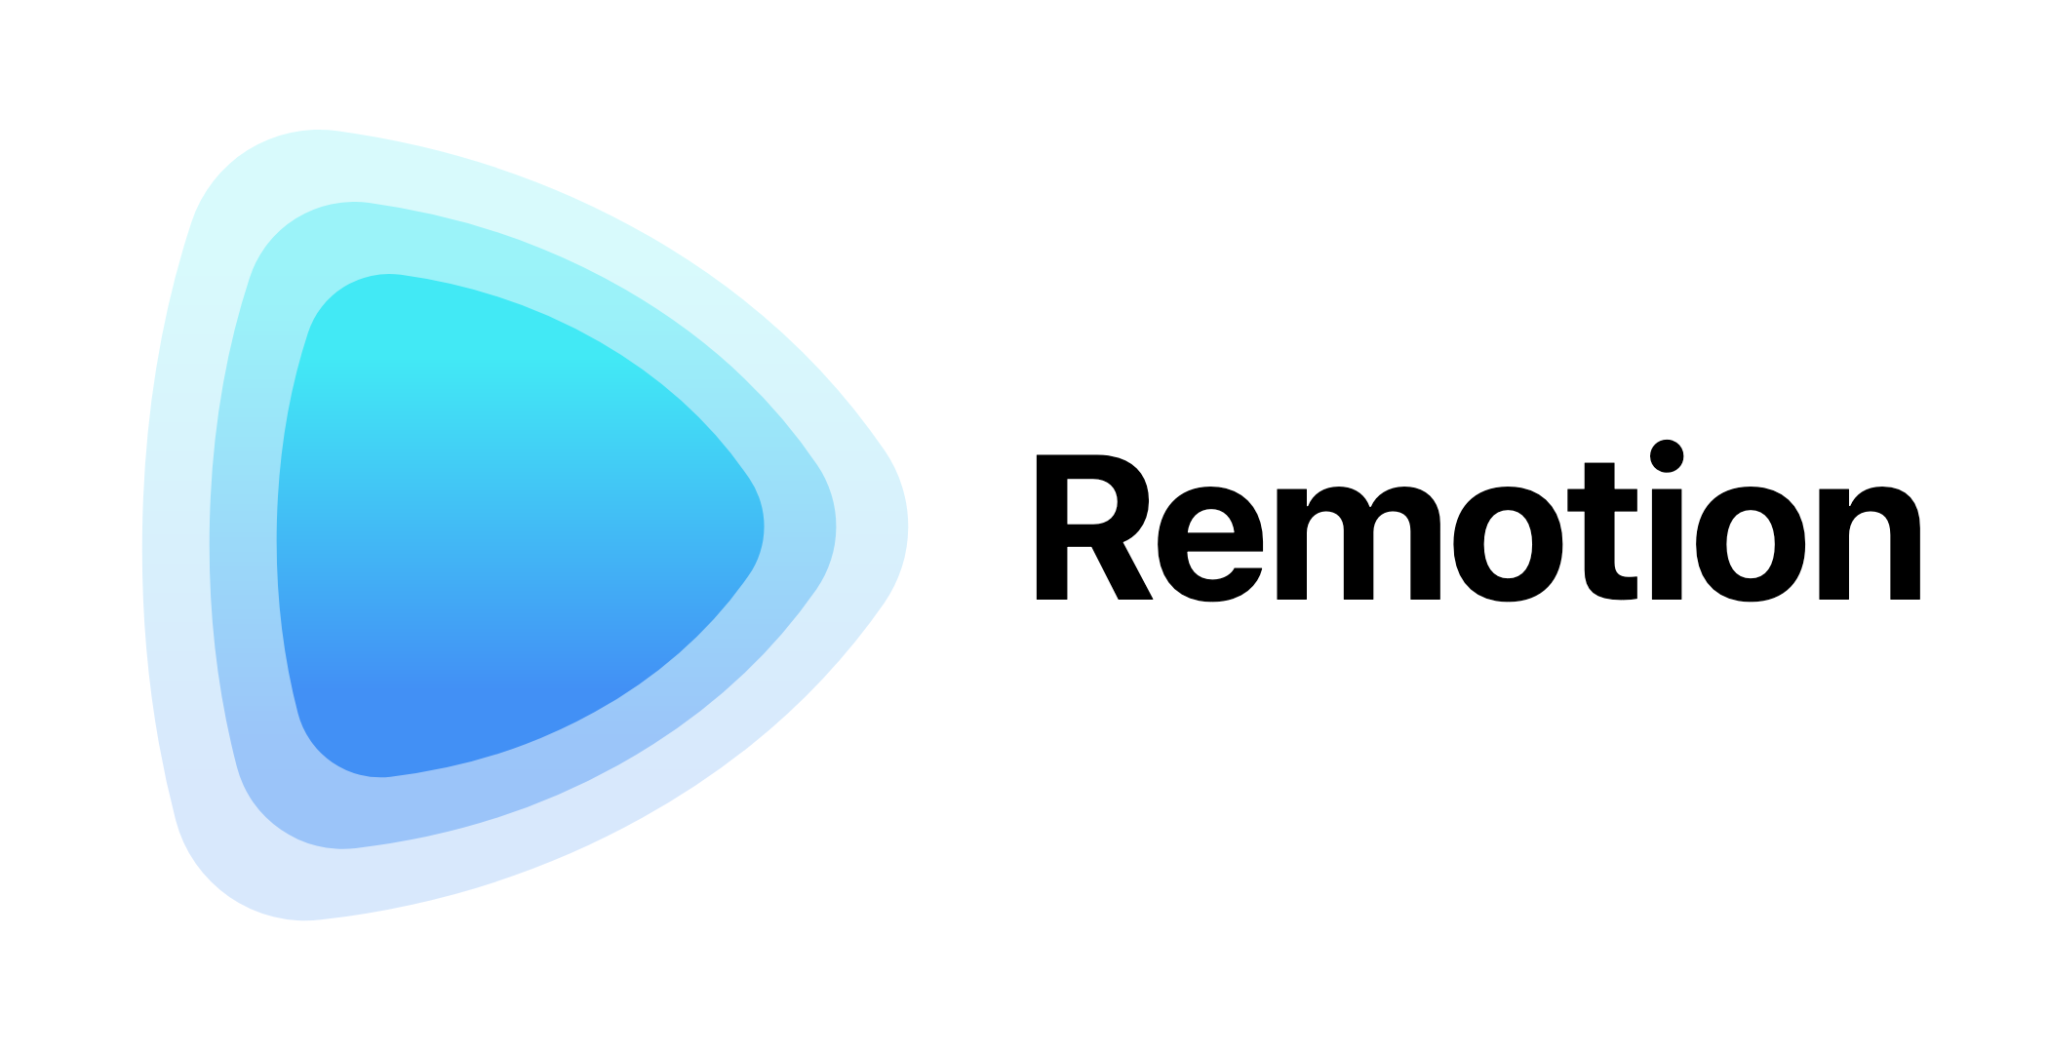 Remotion – Create videos programmatically in React